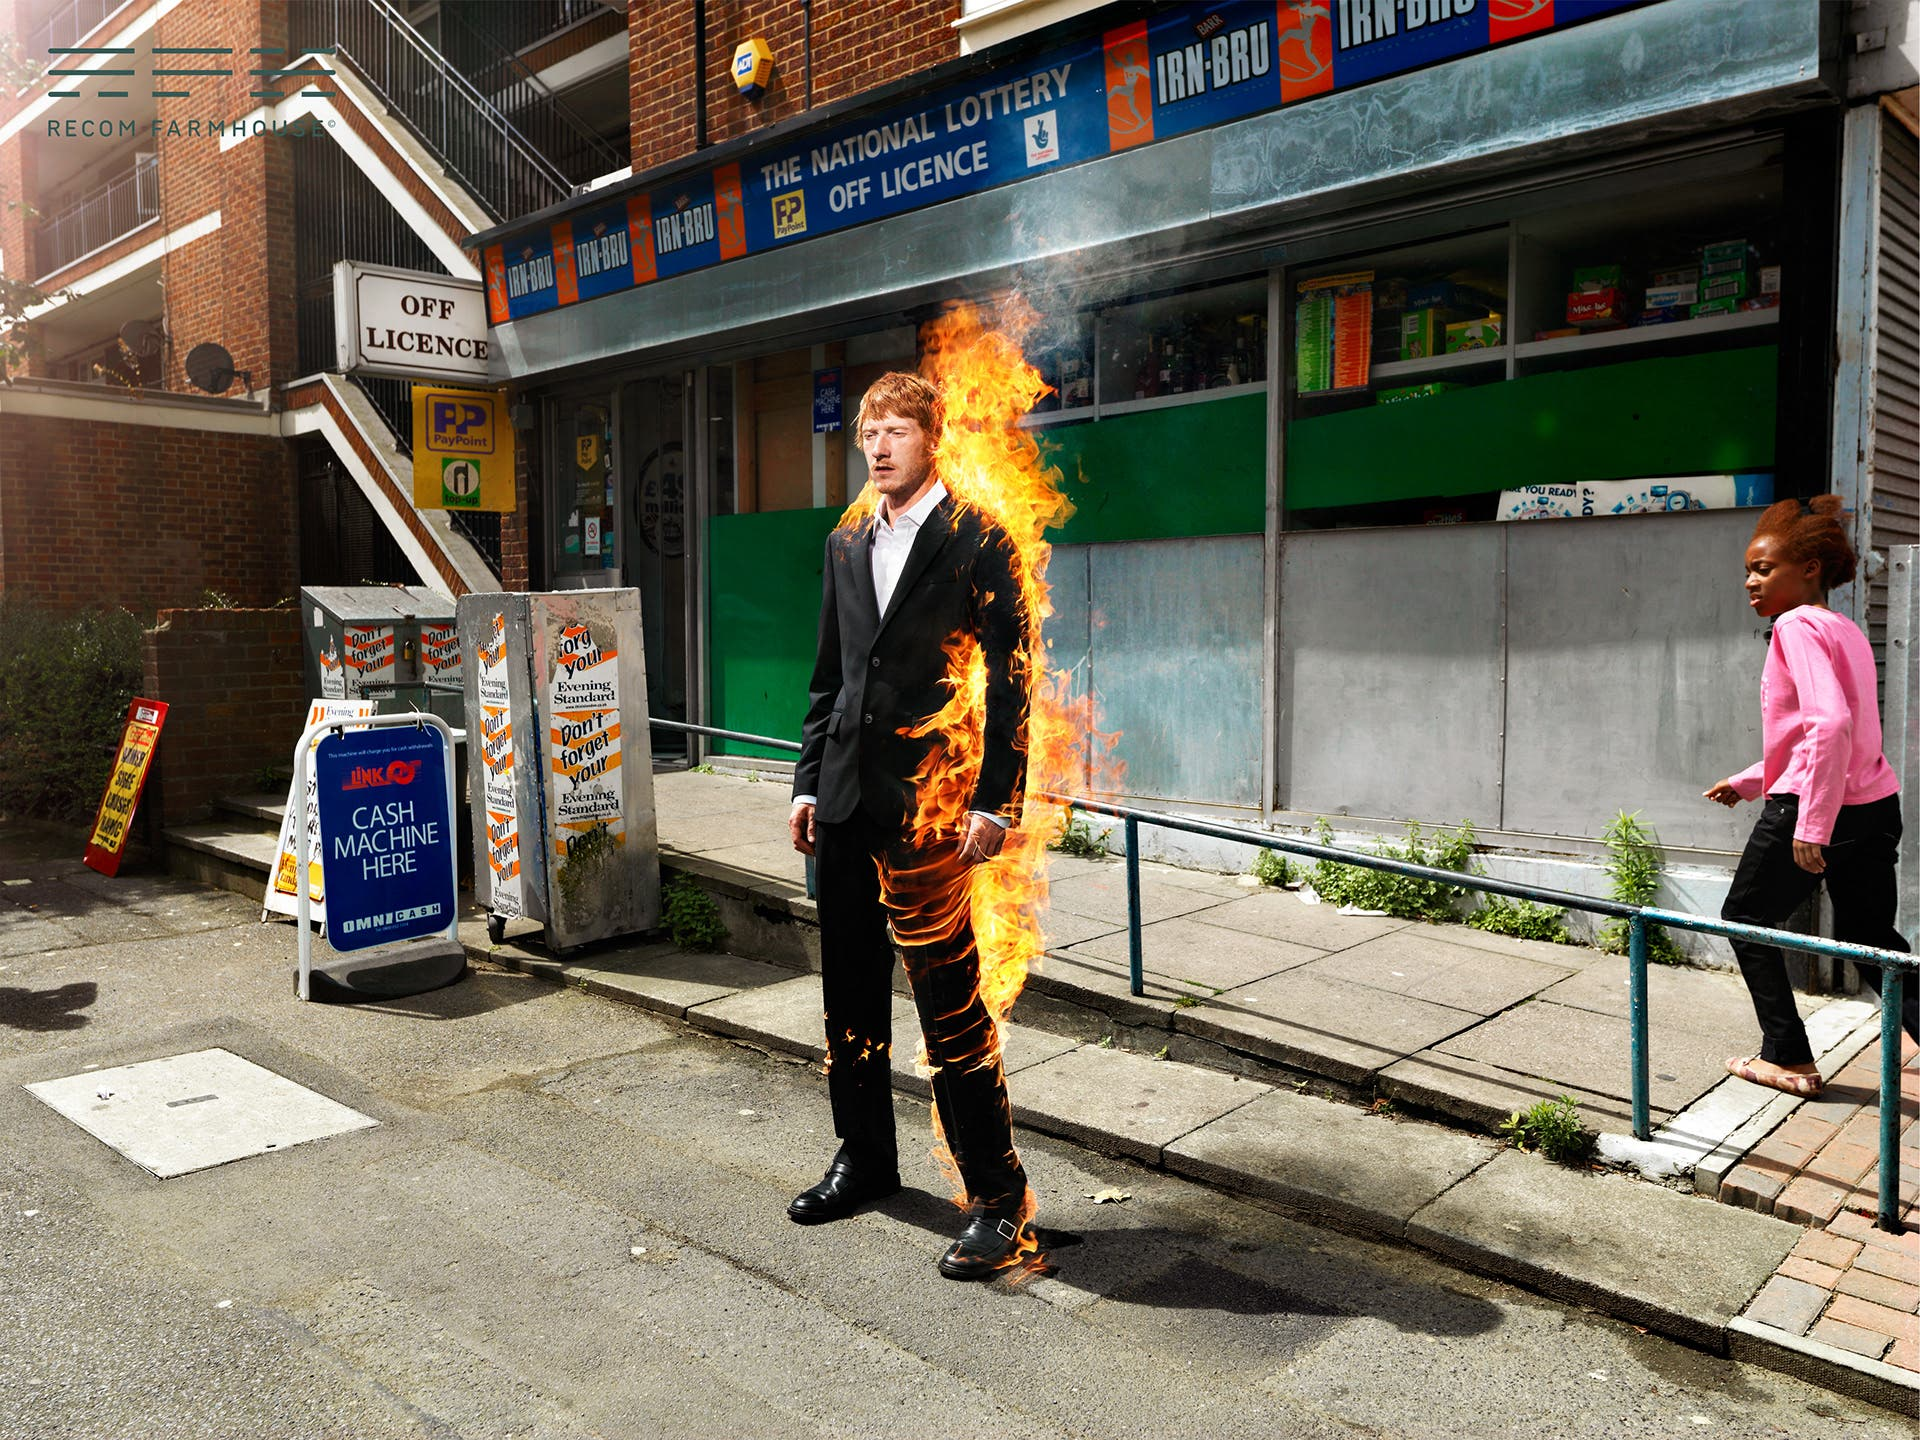 """Holger Pooten and Recom Farmhouse Stage the """"Fireman"""" in East London"""